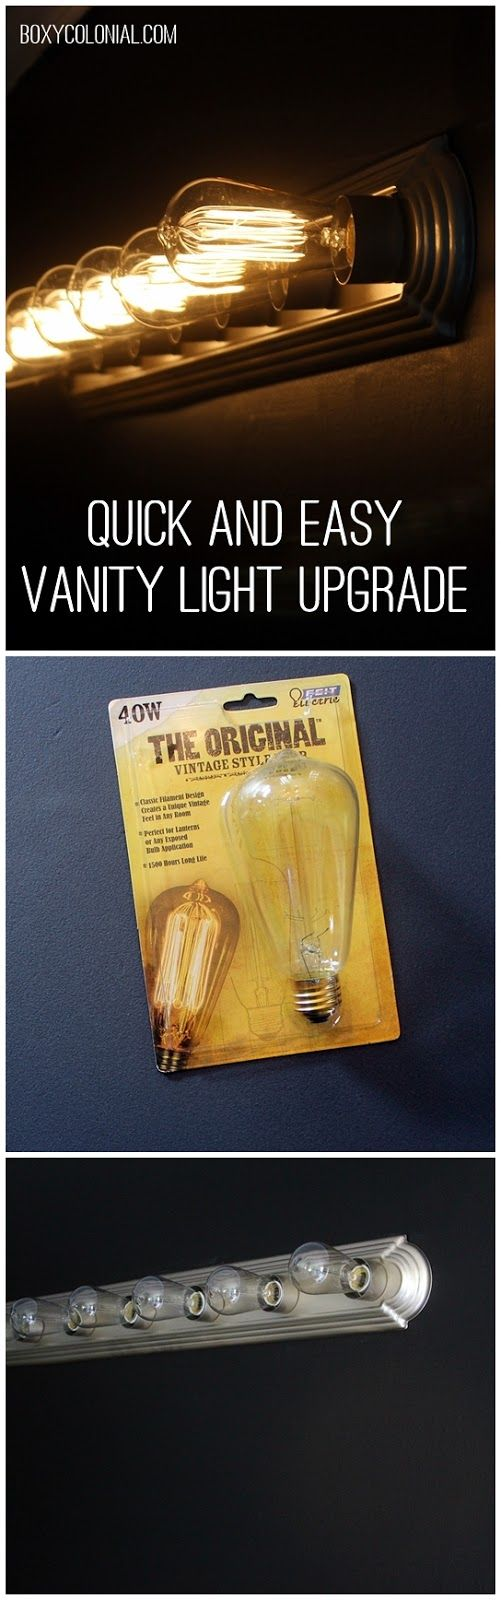 Ugly Bathroom Light Fixtures best 25+ cheap light fixtures ideas on pinterest | mason jar light